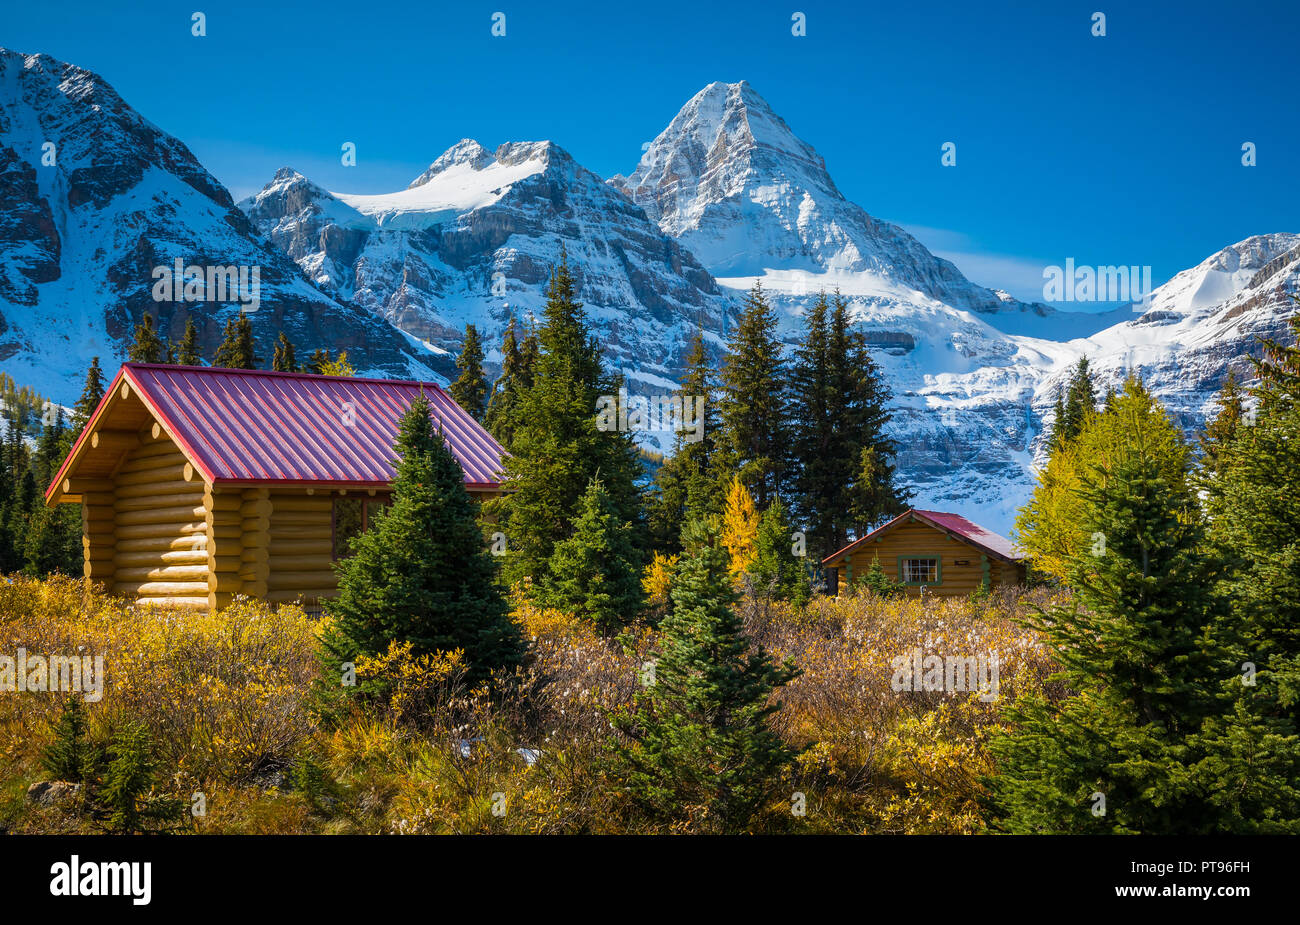 Mount Assiniboine, also known as Assiniboine Mountain, is a pyramidal peak mountain located on the Great Divide, on the British Columbia/Alberta borde - Stock Image